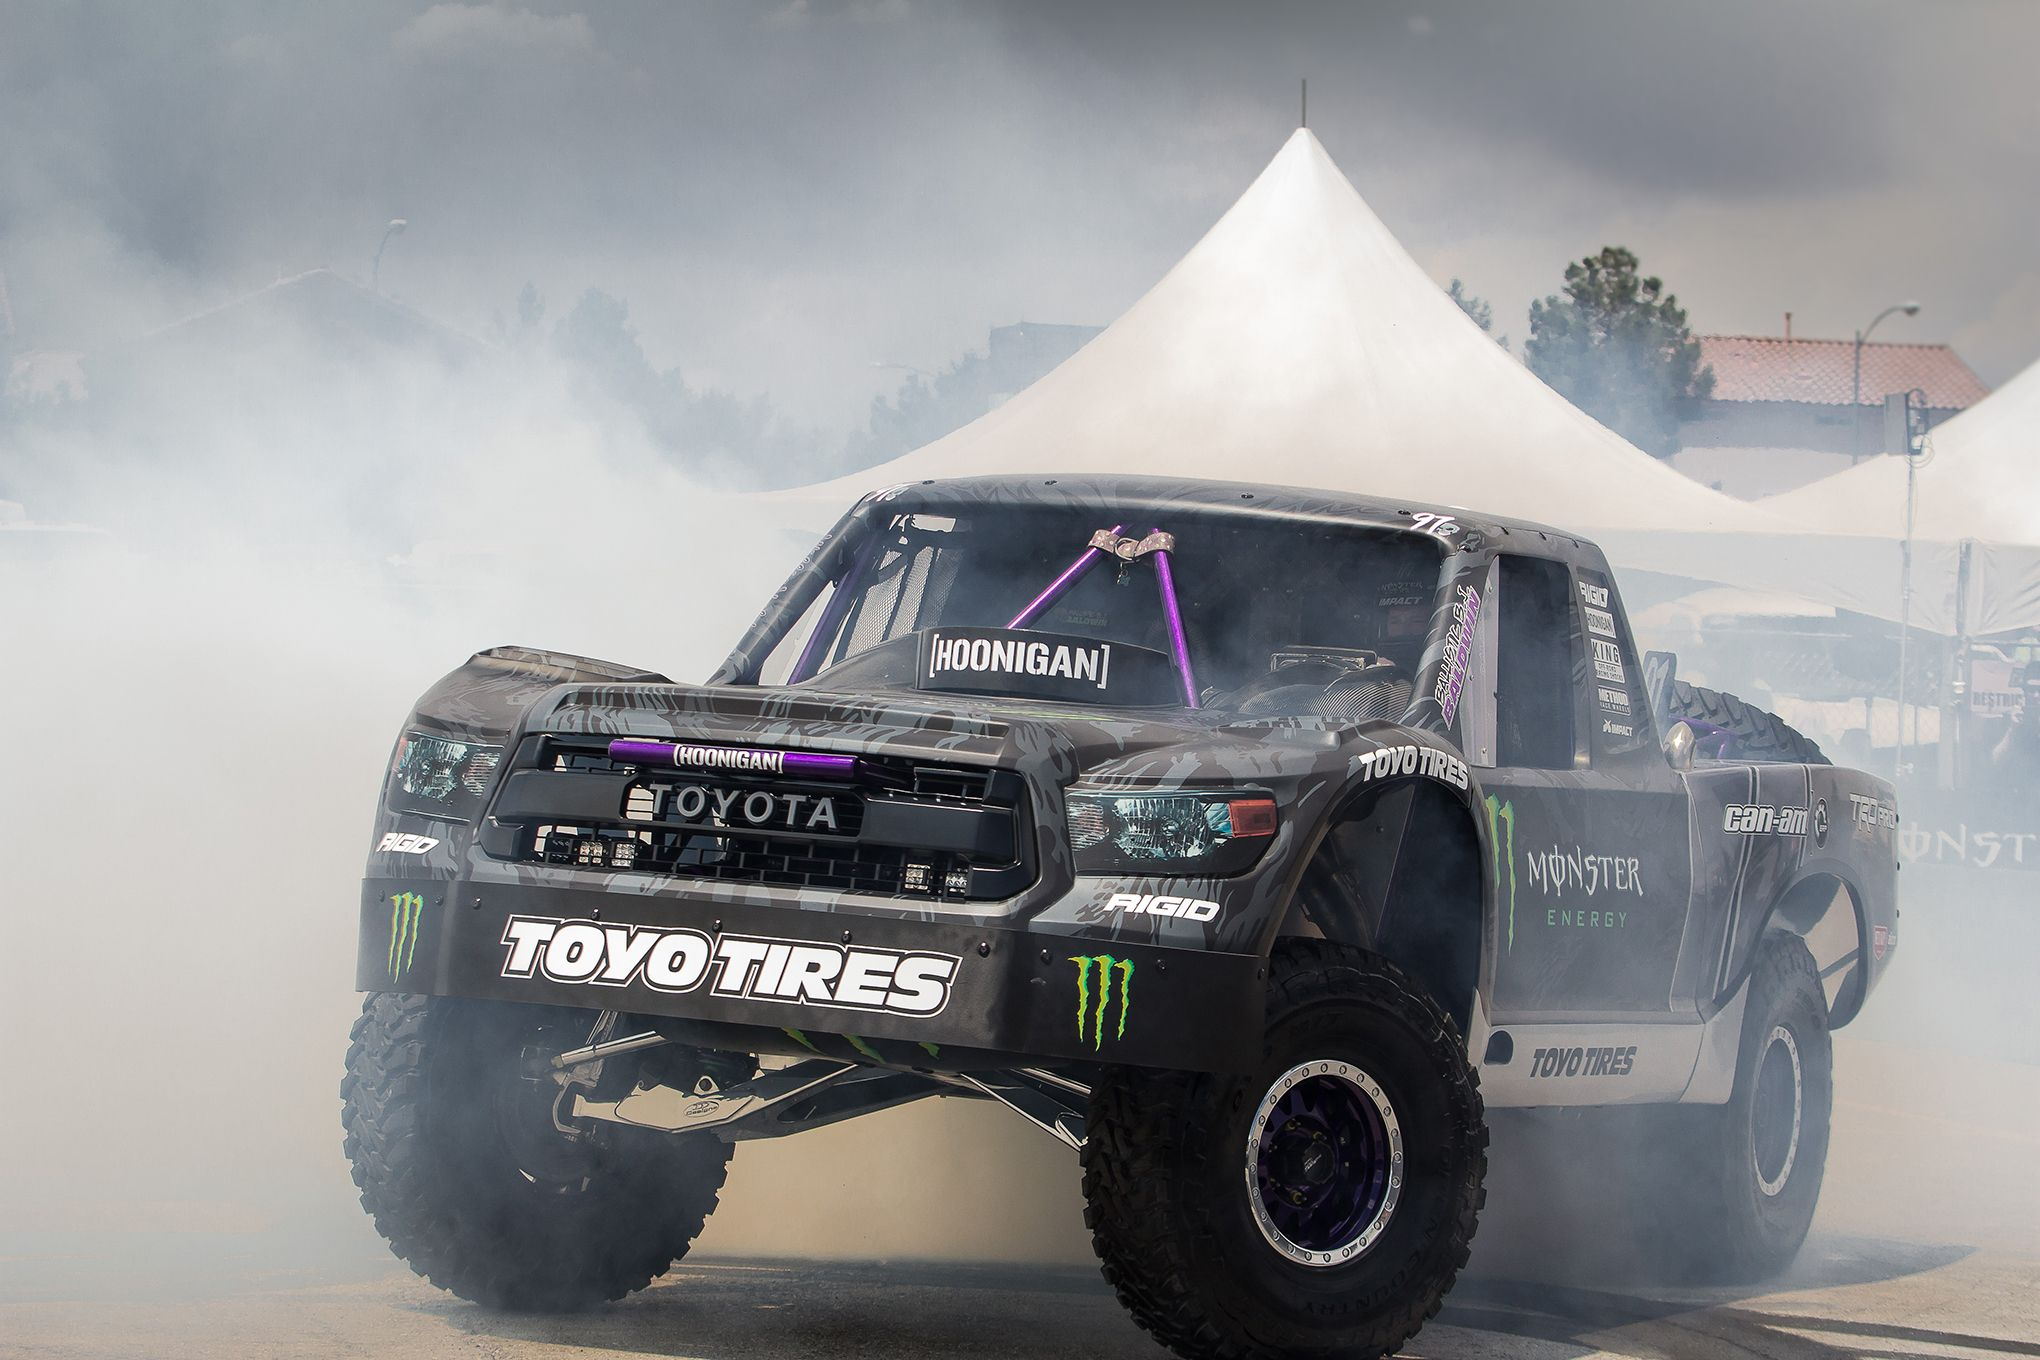 Toyota Tundra Offroad >> BJ Baldwin Trades In His Silverado Trophy Truck For A Tundra - Moto Networks